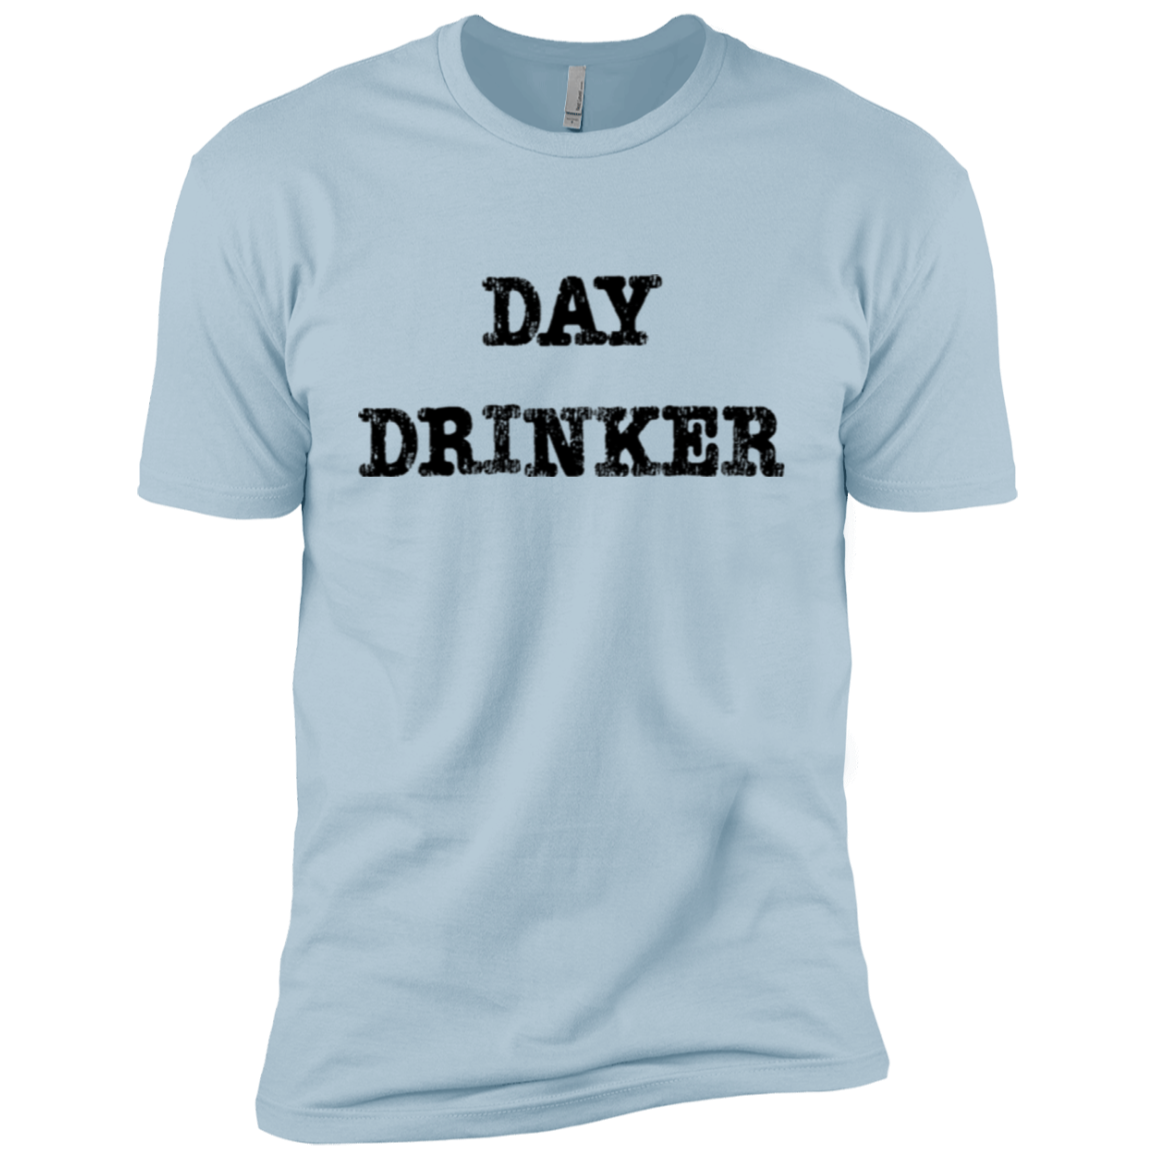 Day Drinker Men's Classic Tee - Trendy Tees